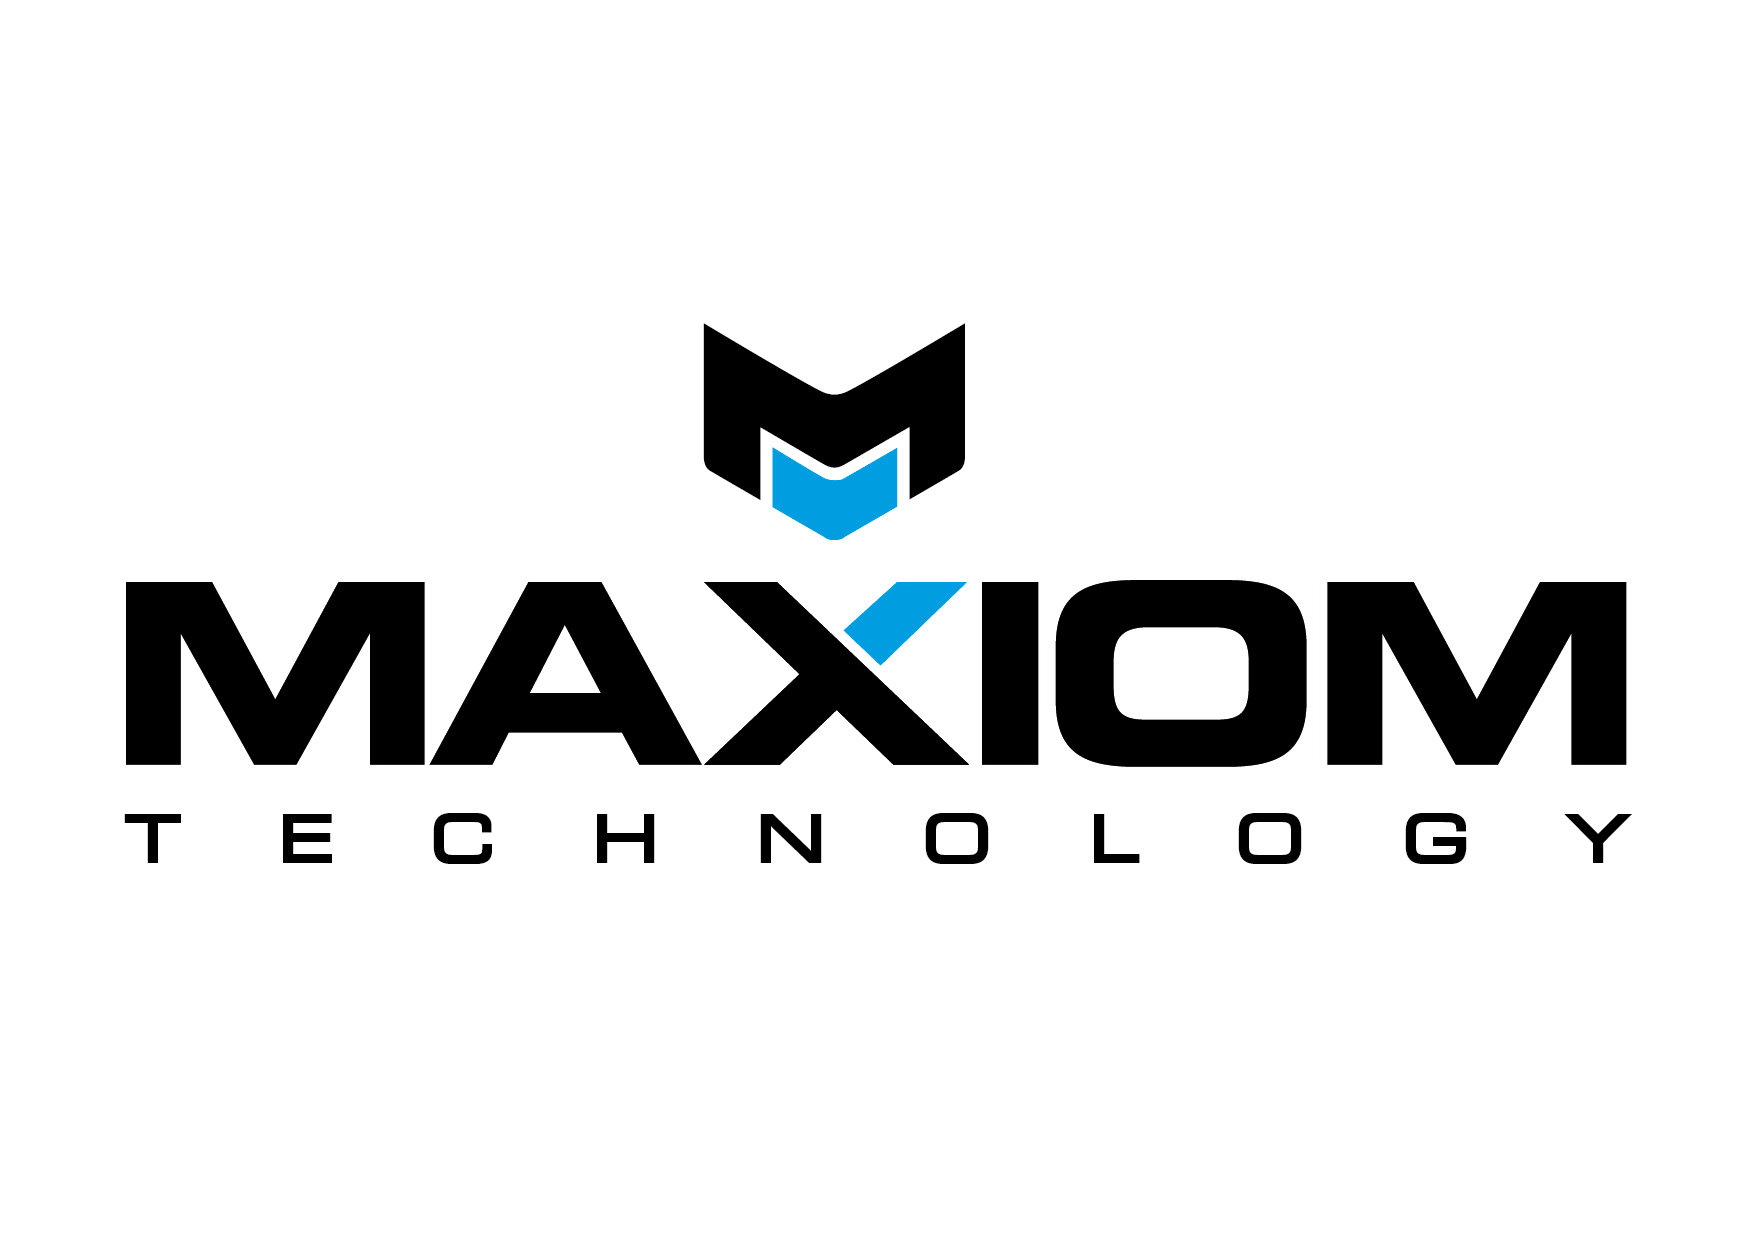 Maxiom Technology Logo